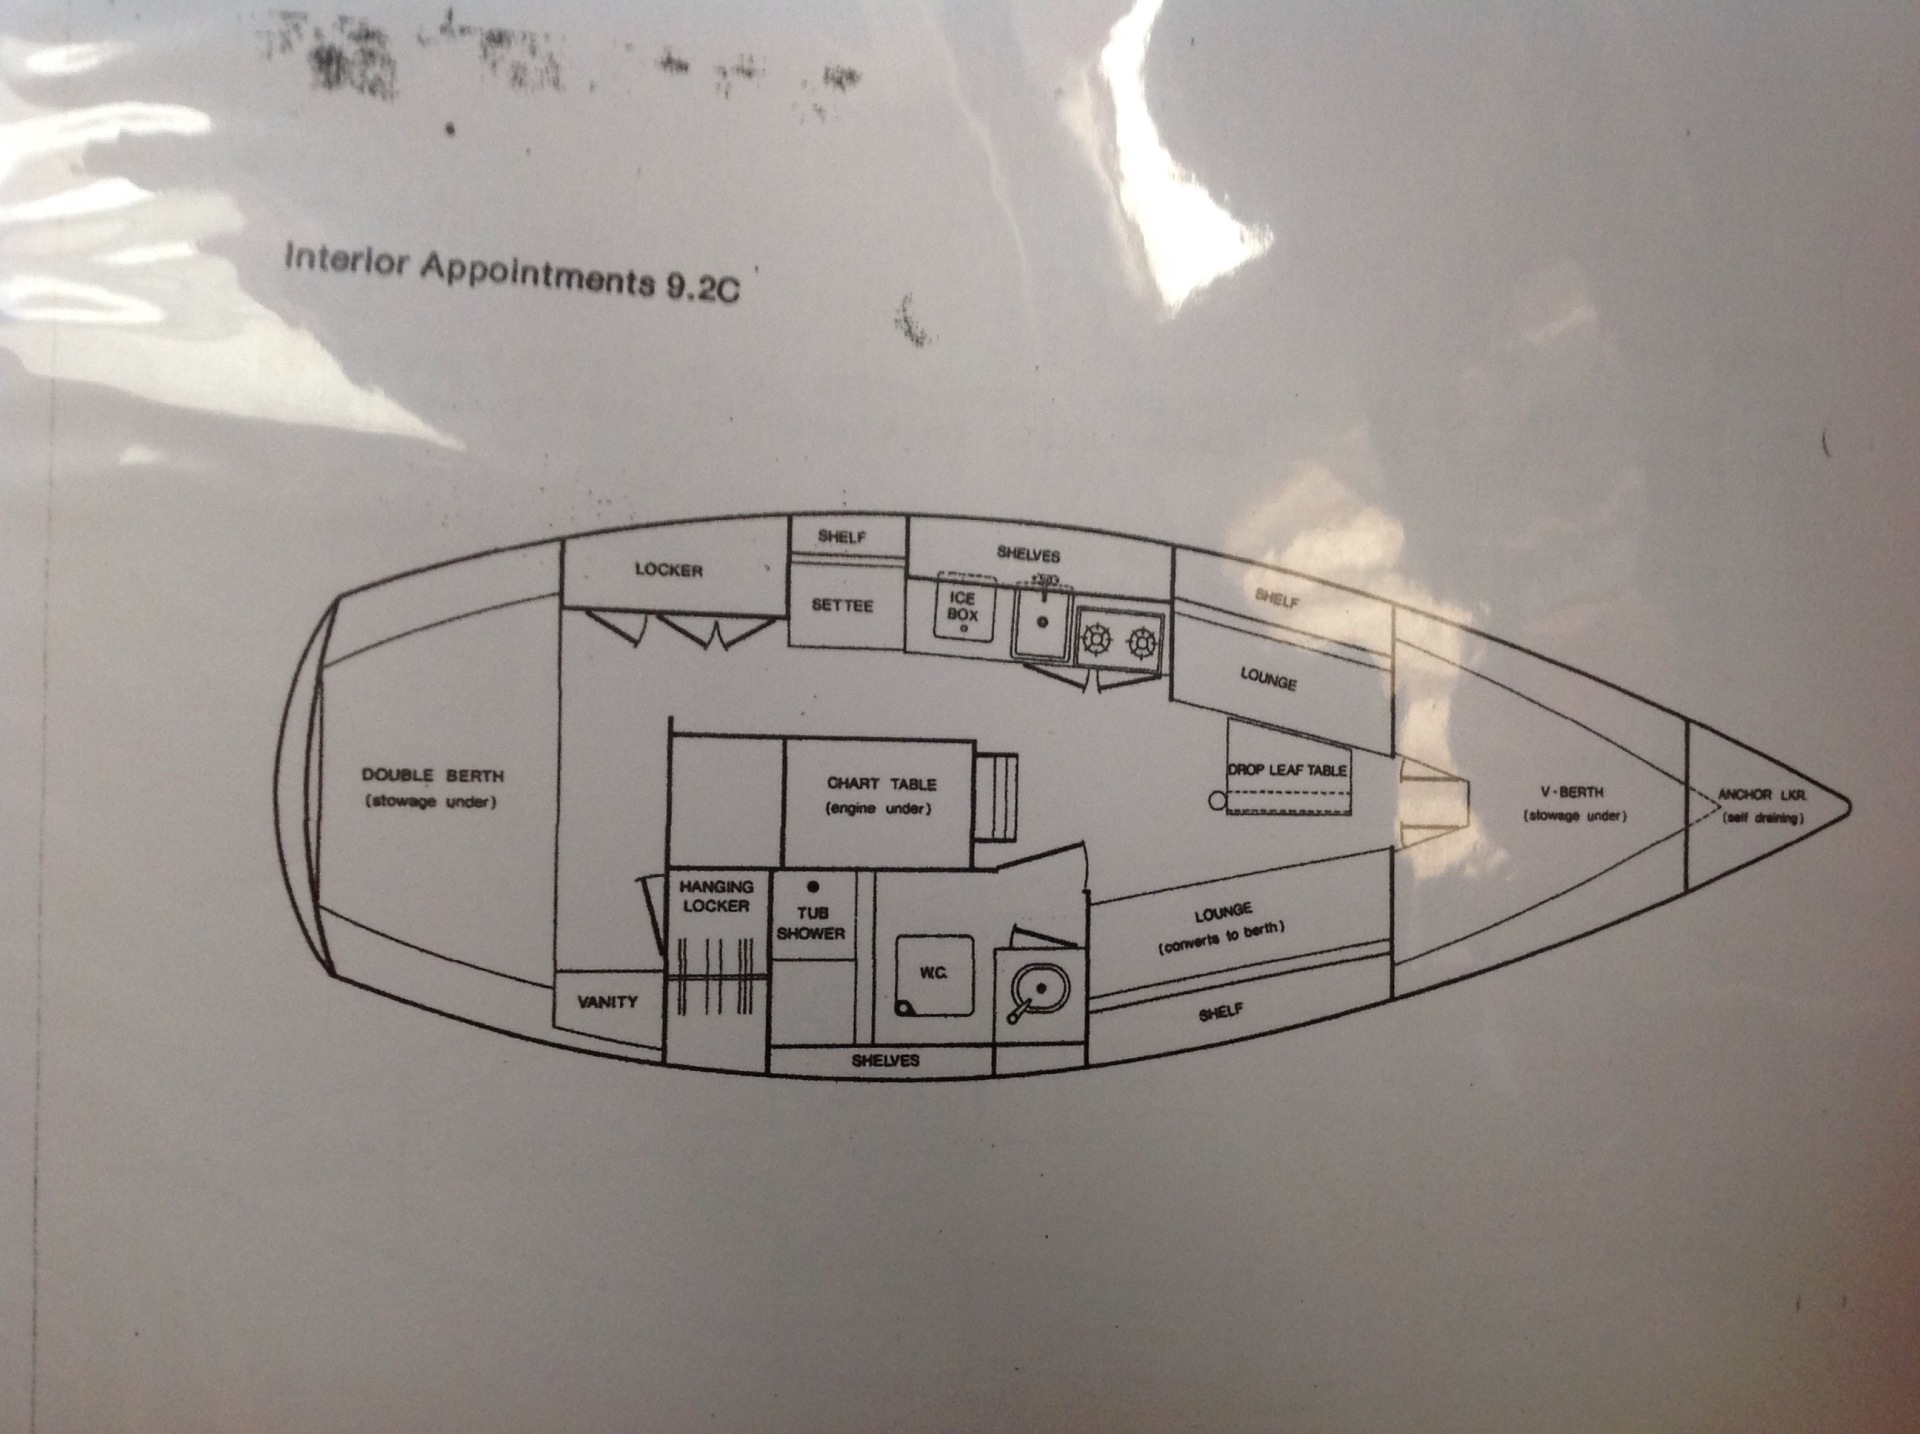 Floor Plan of our S2 9.2C